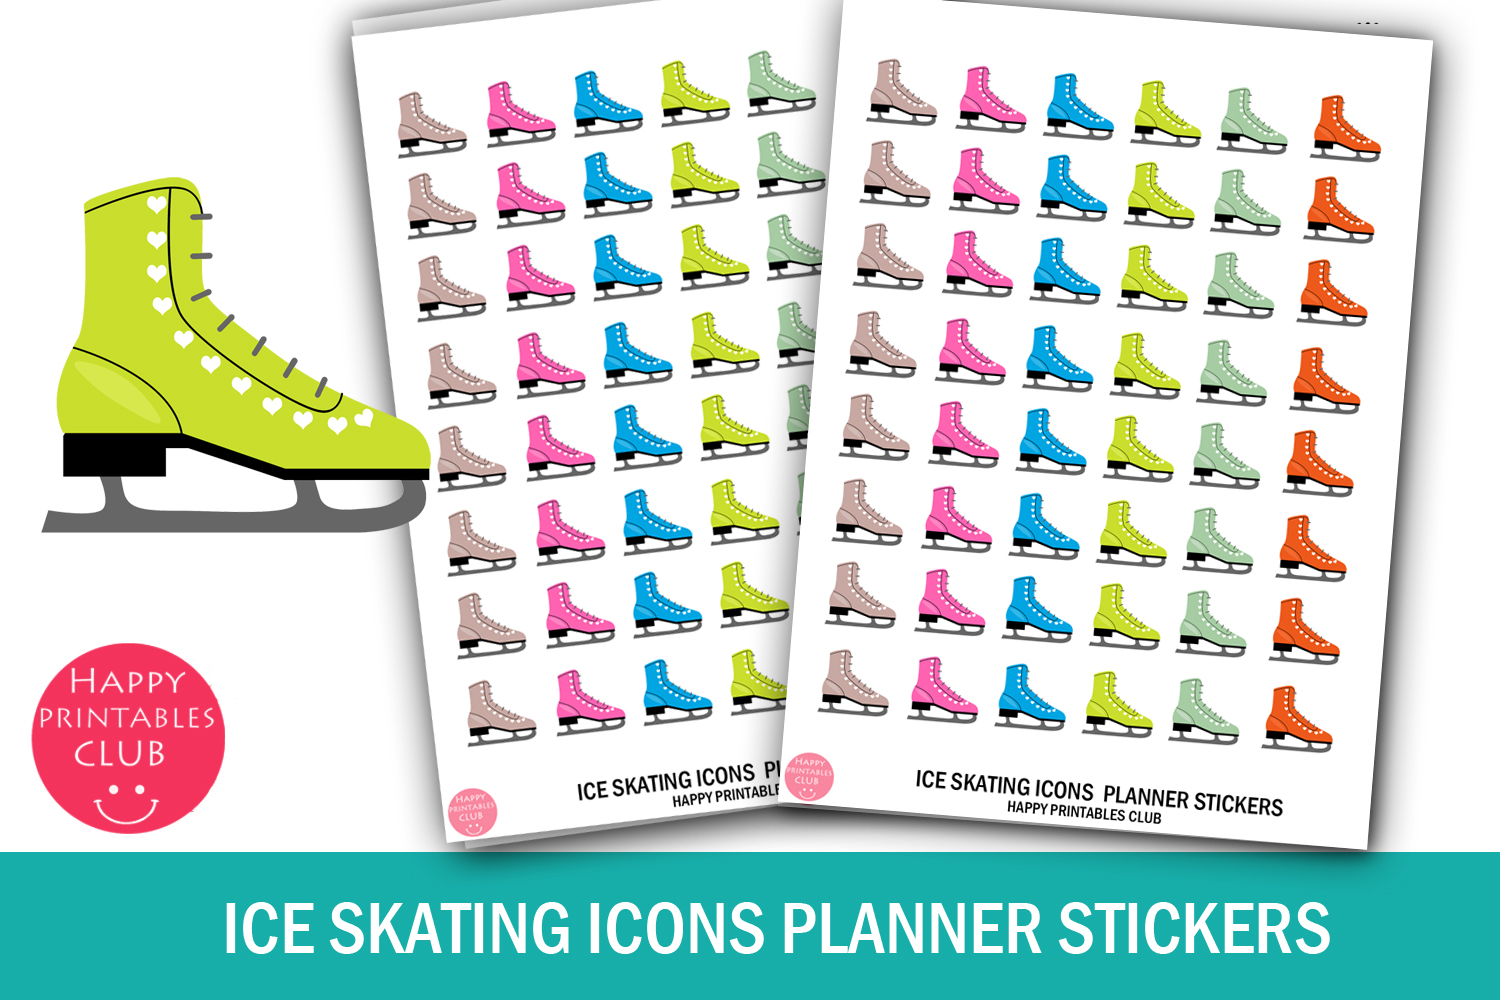 Download Free Ice Skating Icons Planner Stickers Graphic By Happy Printables for Cricut Explore, Silhouette and other cutting machines.